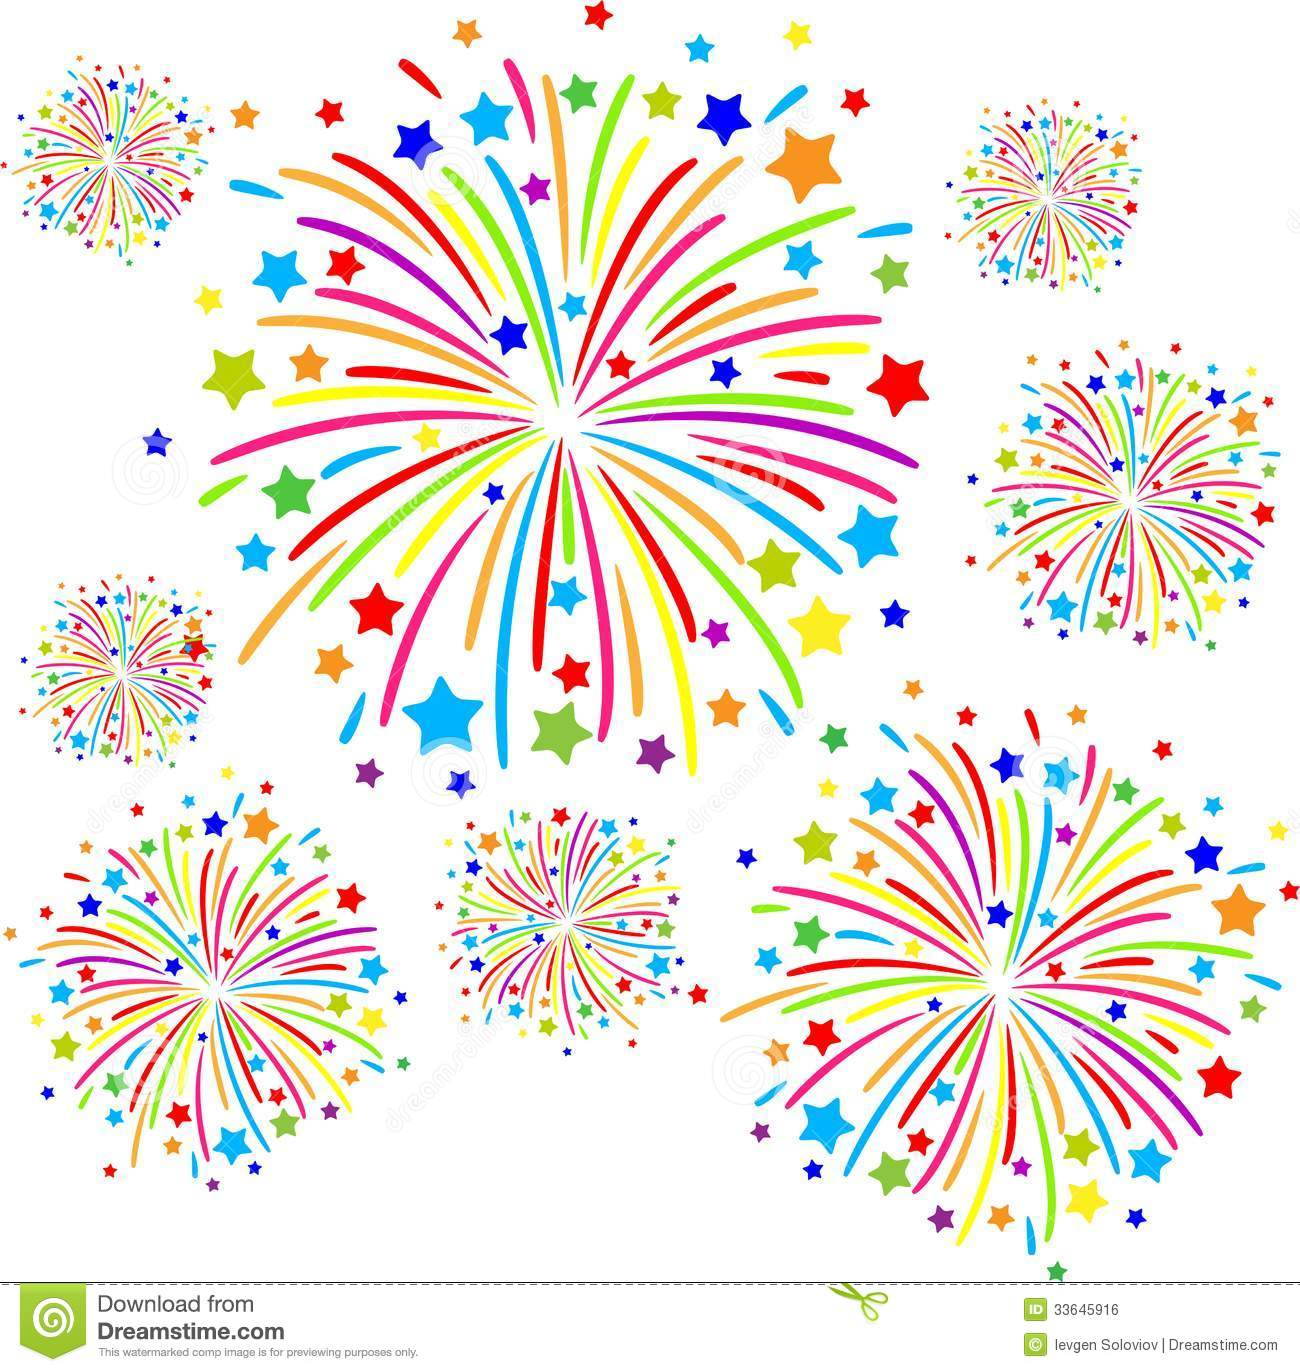 Colorful firework clipart.